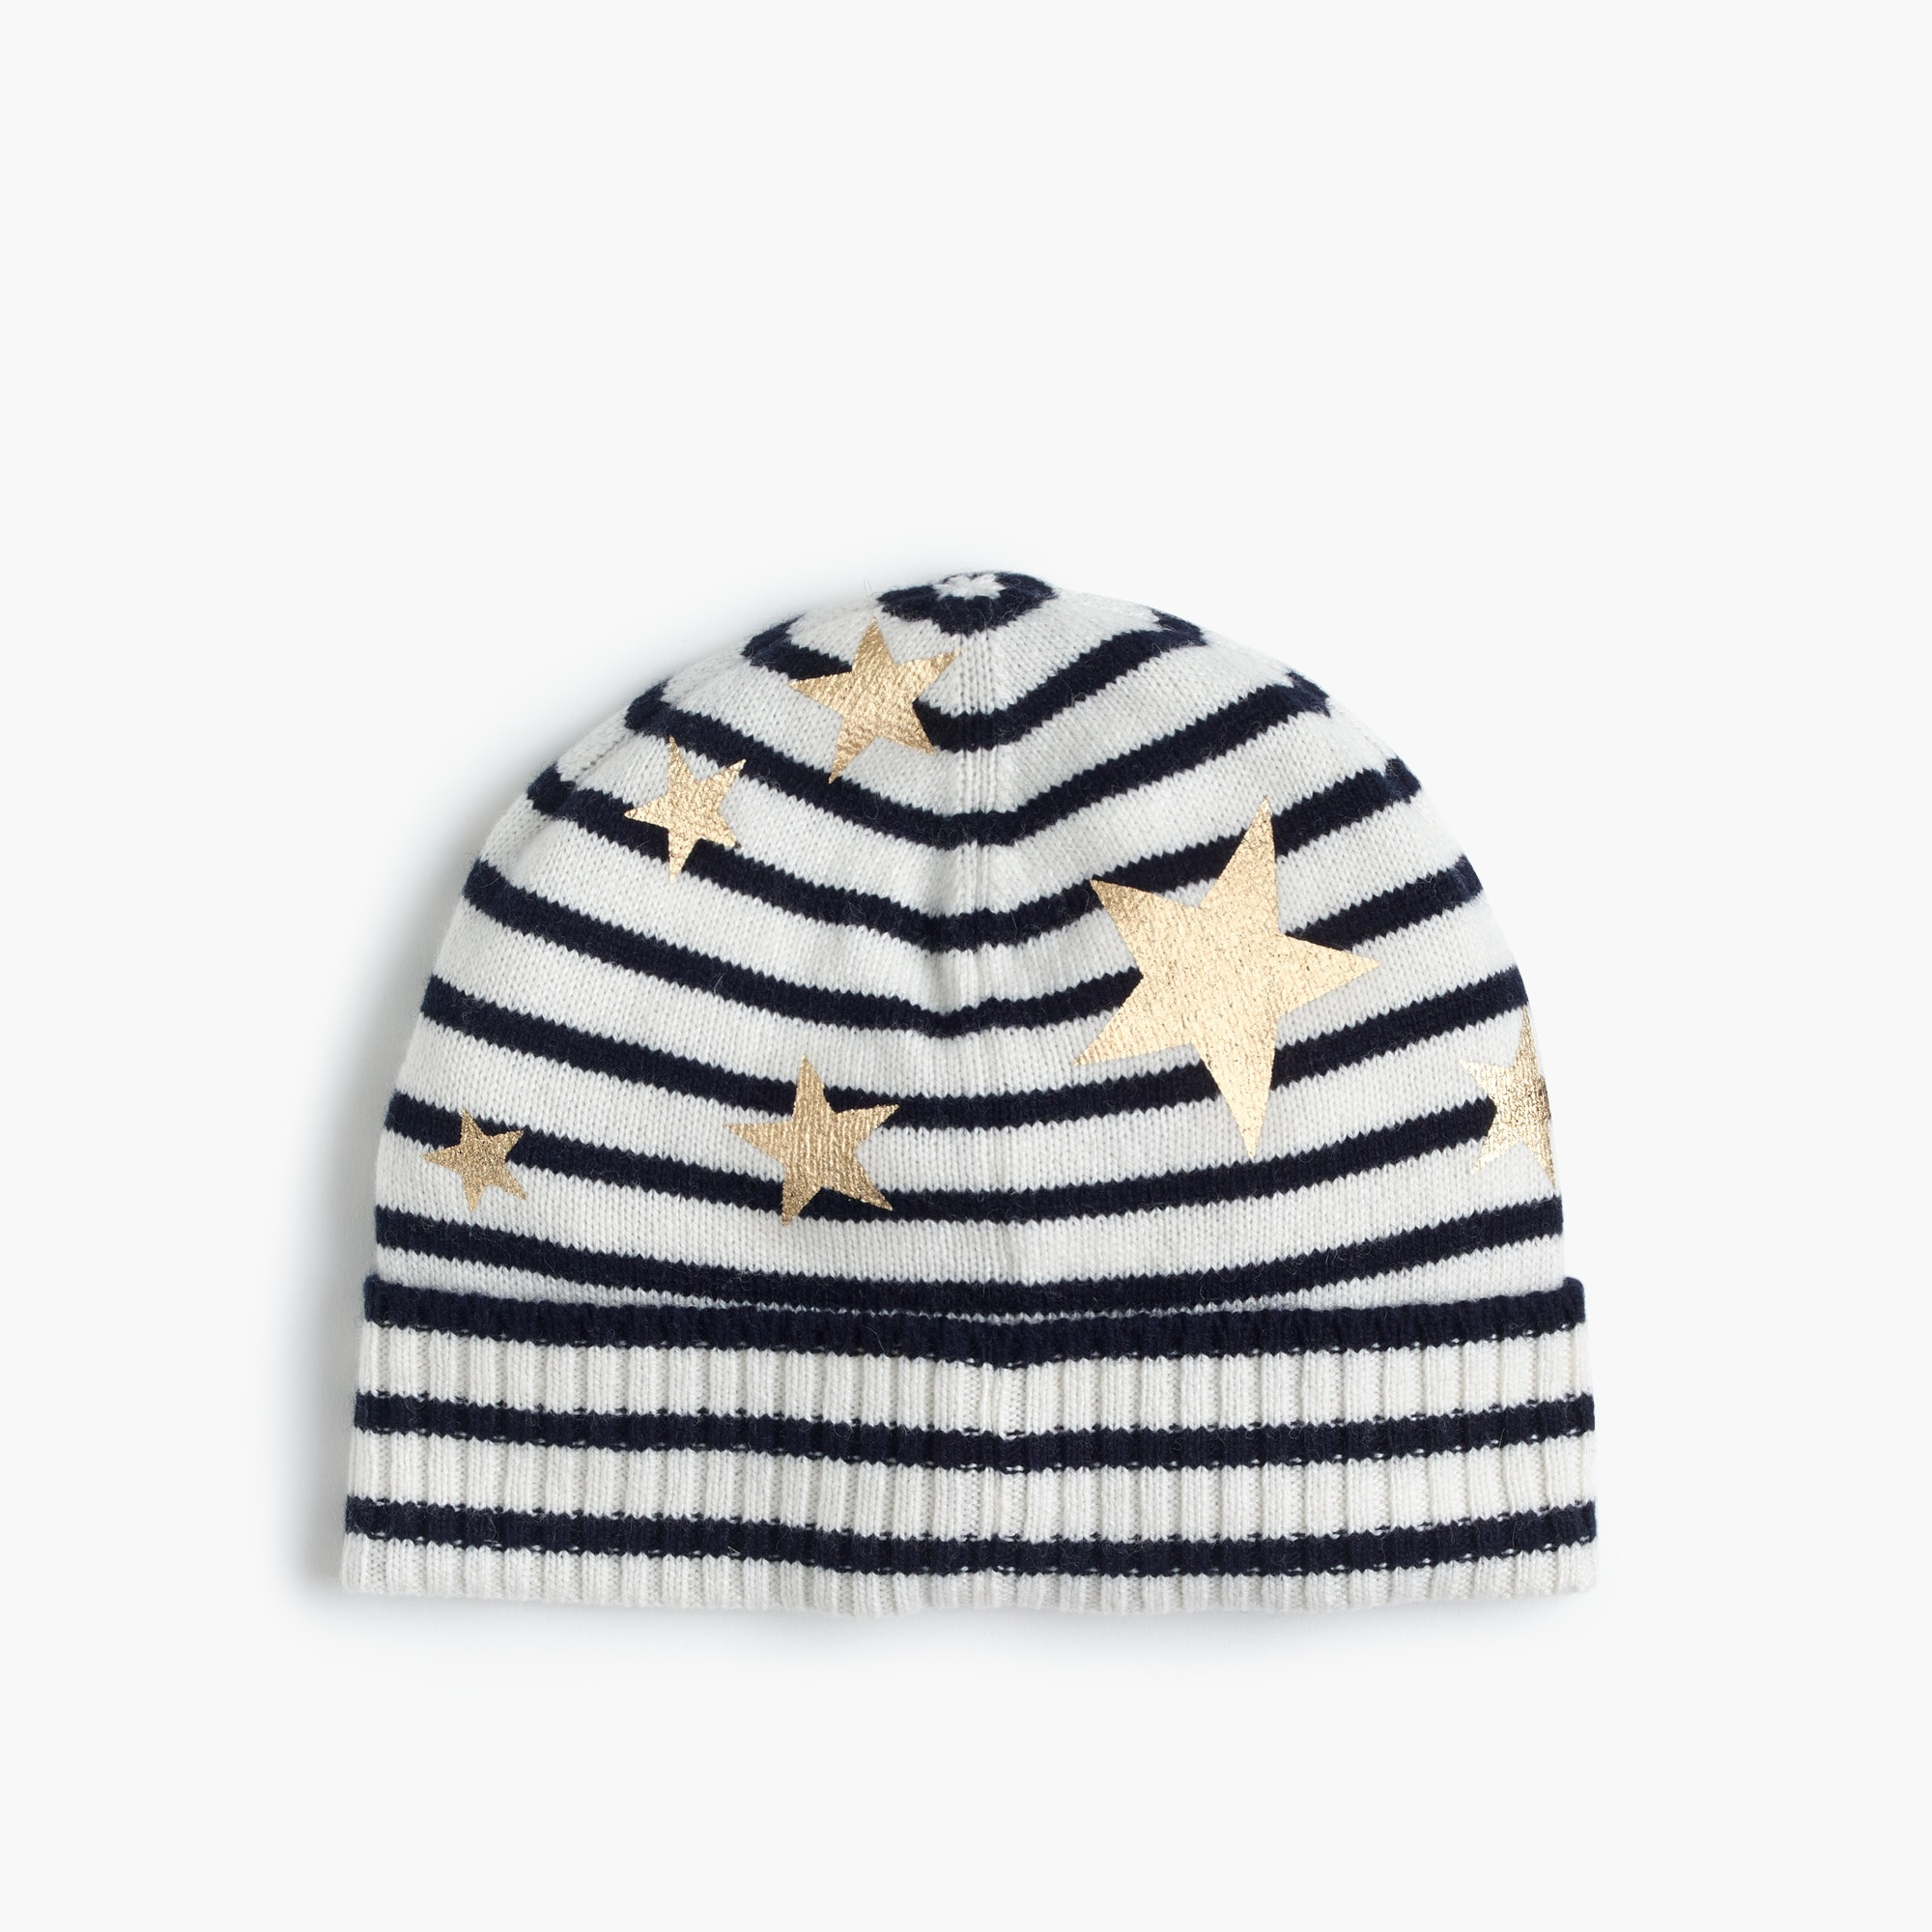 Girls' striped knit hat with gold stars